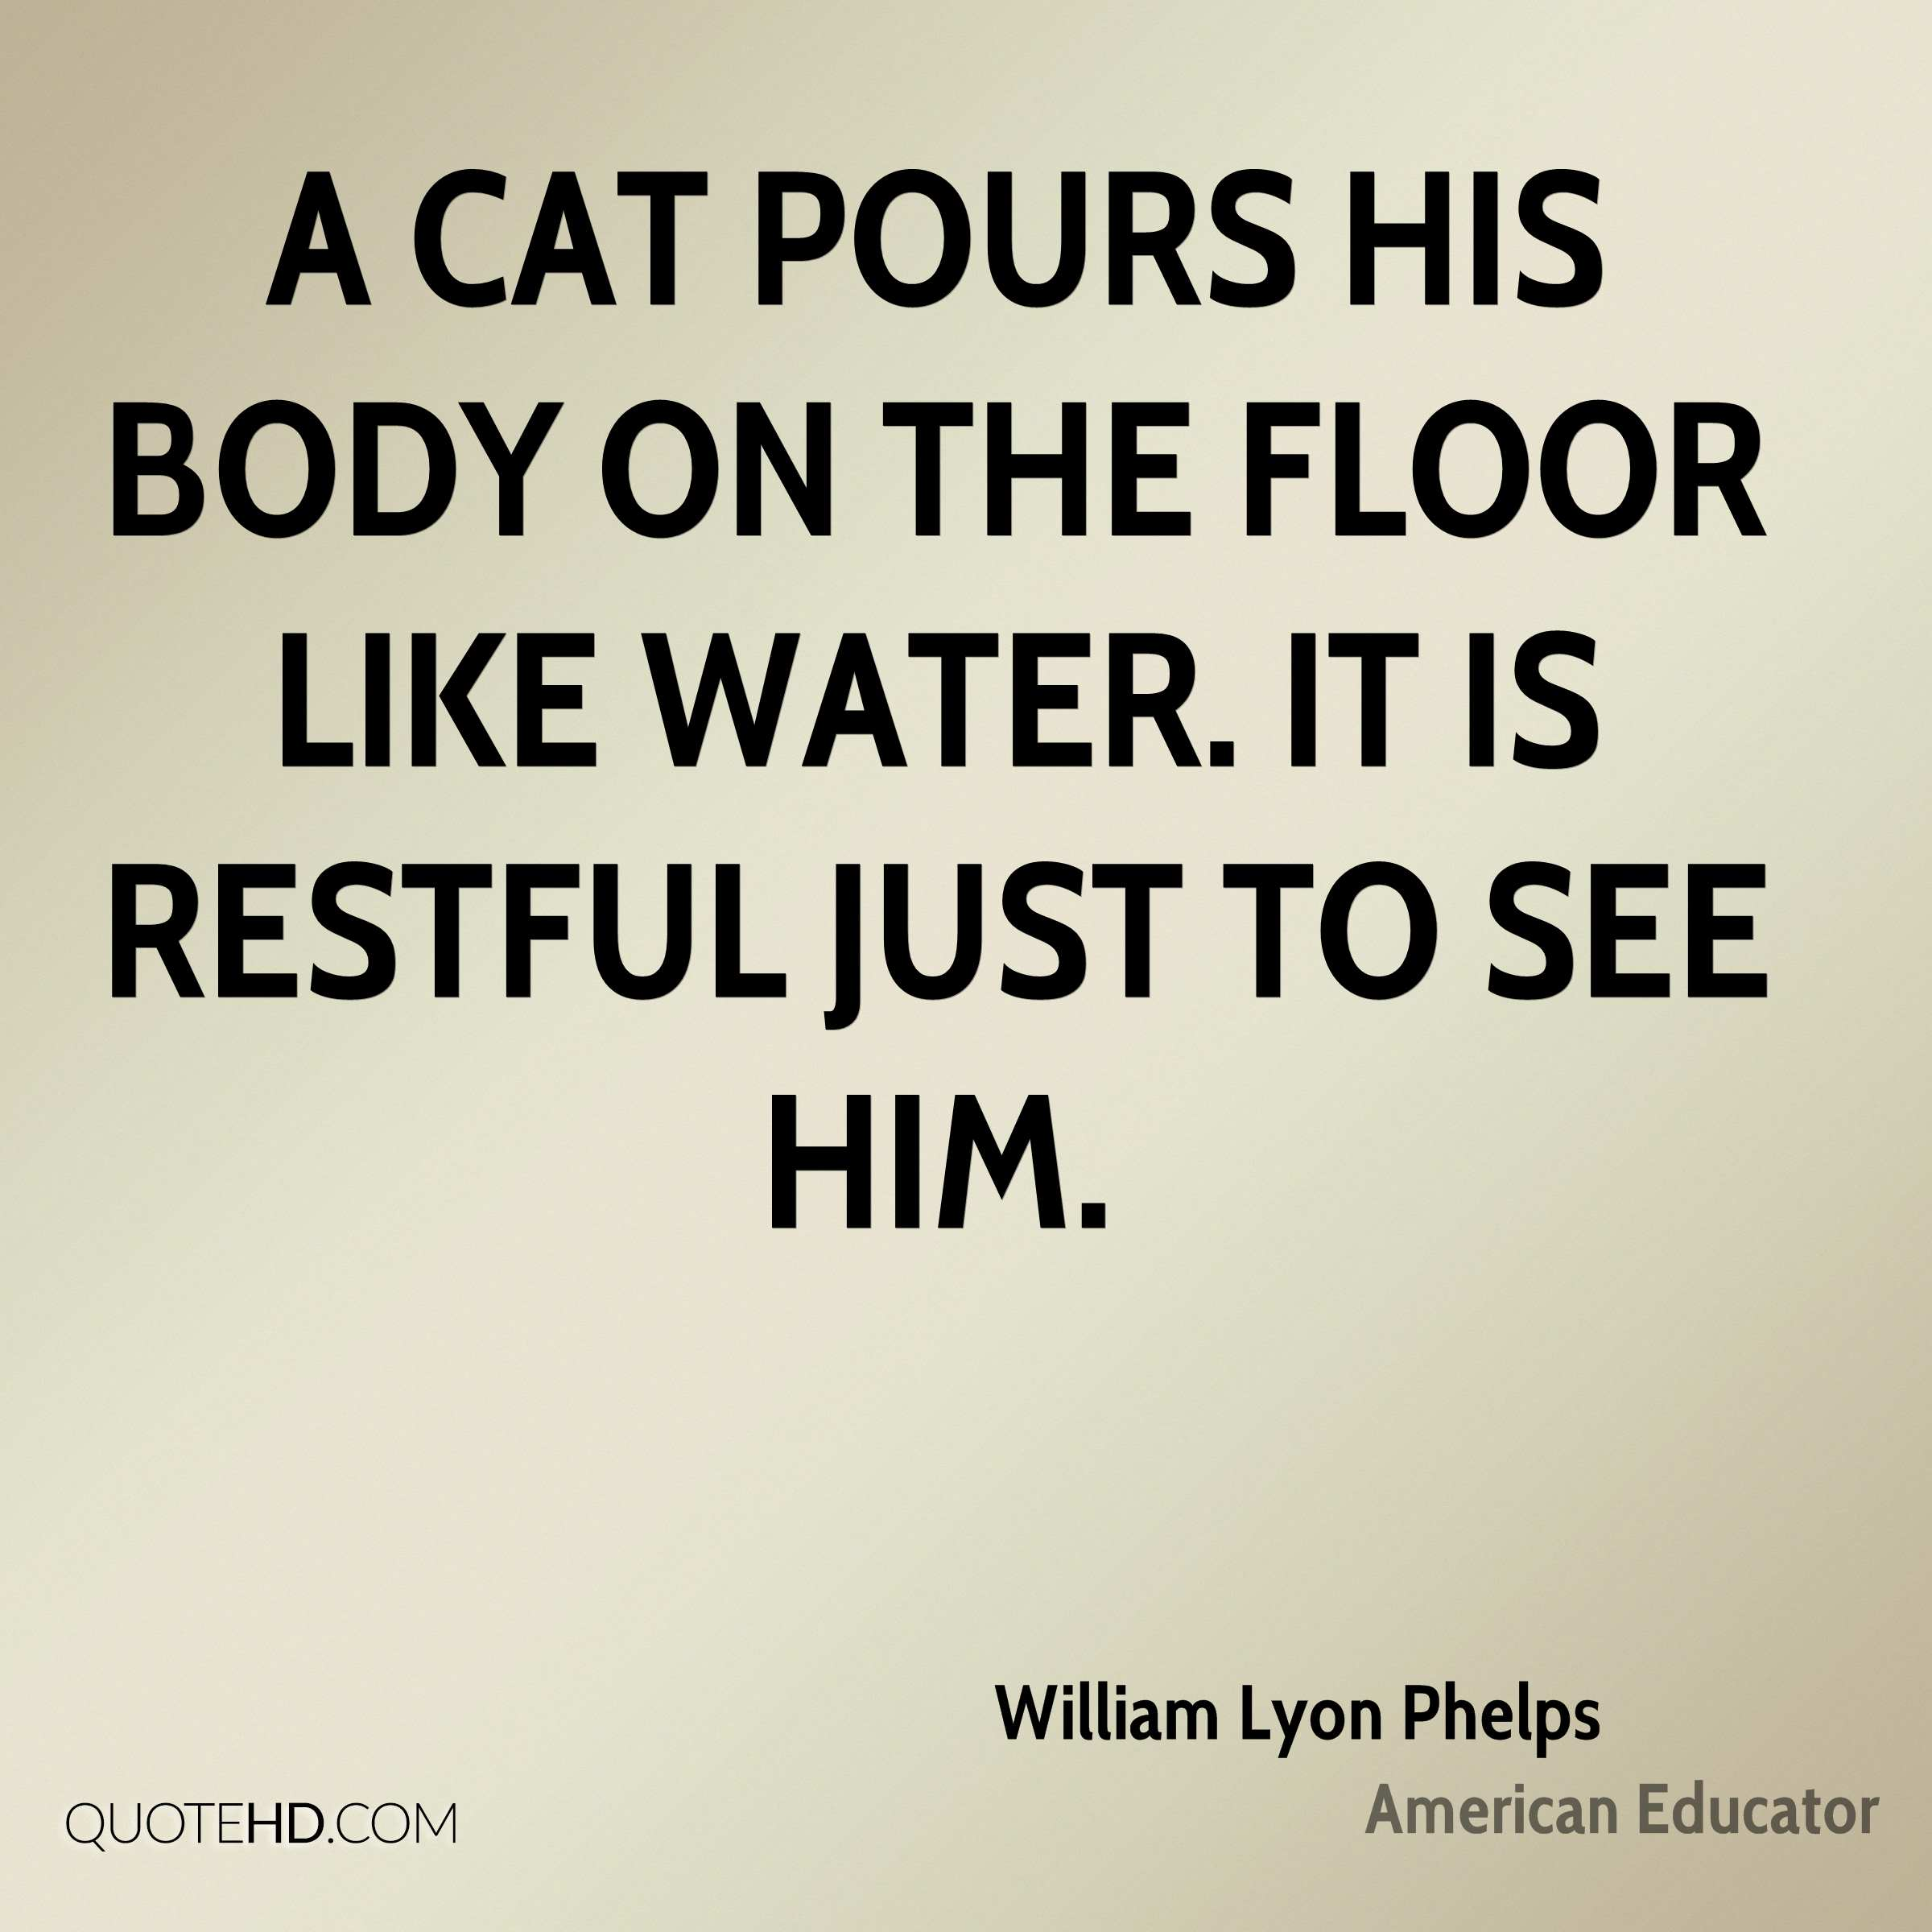 A cat pours his body on the floor like water. It is restful just to see him.